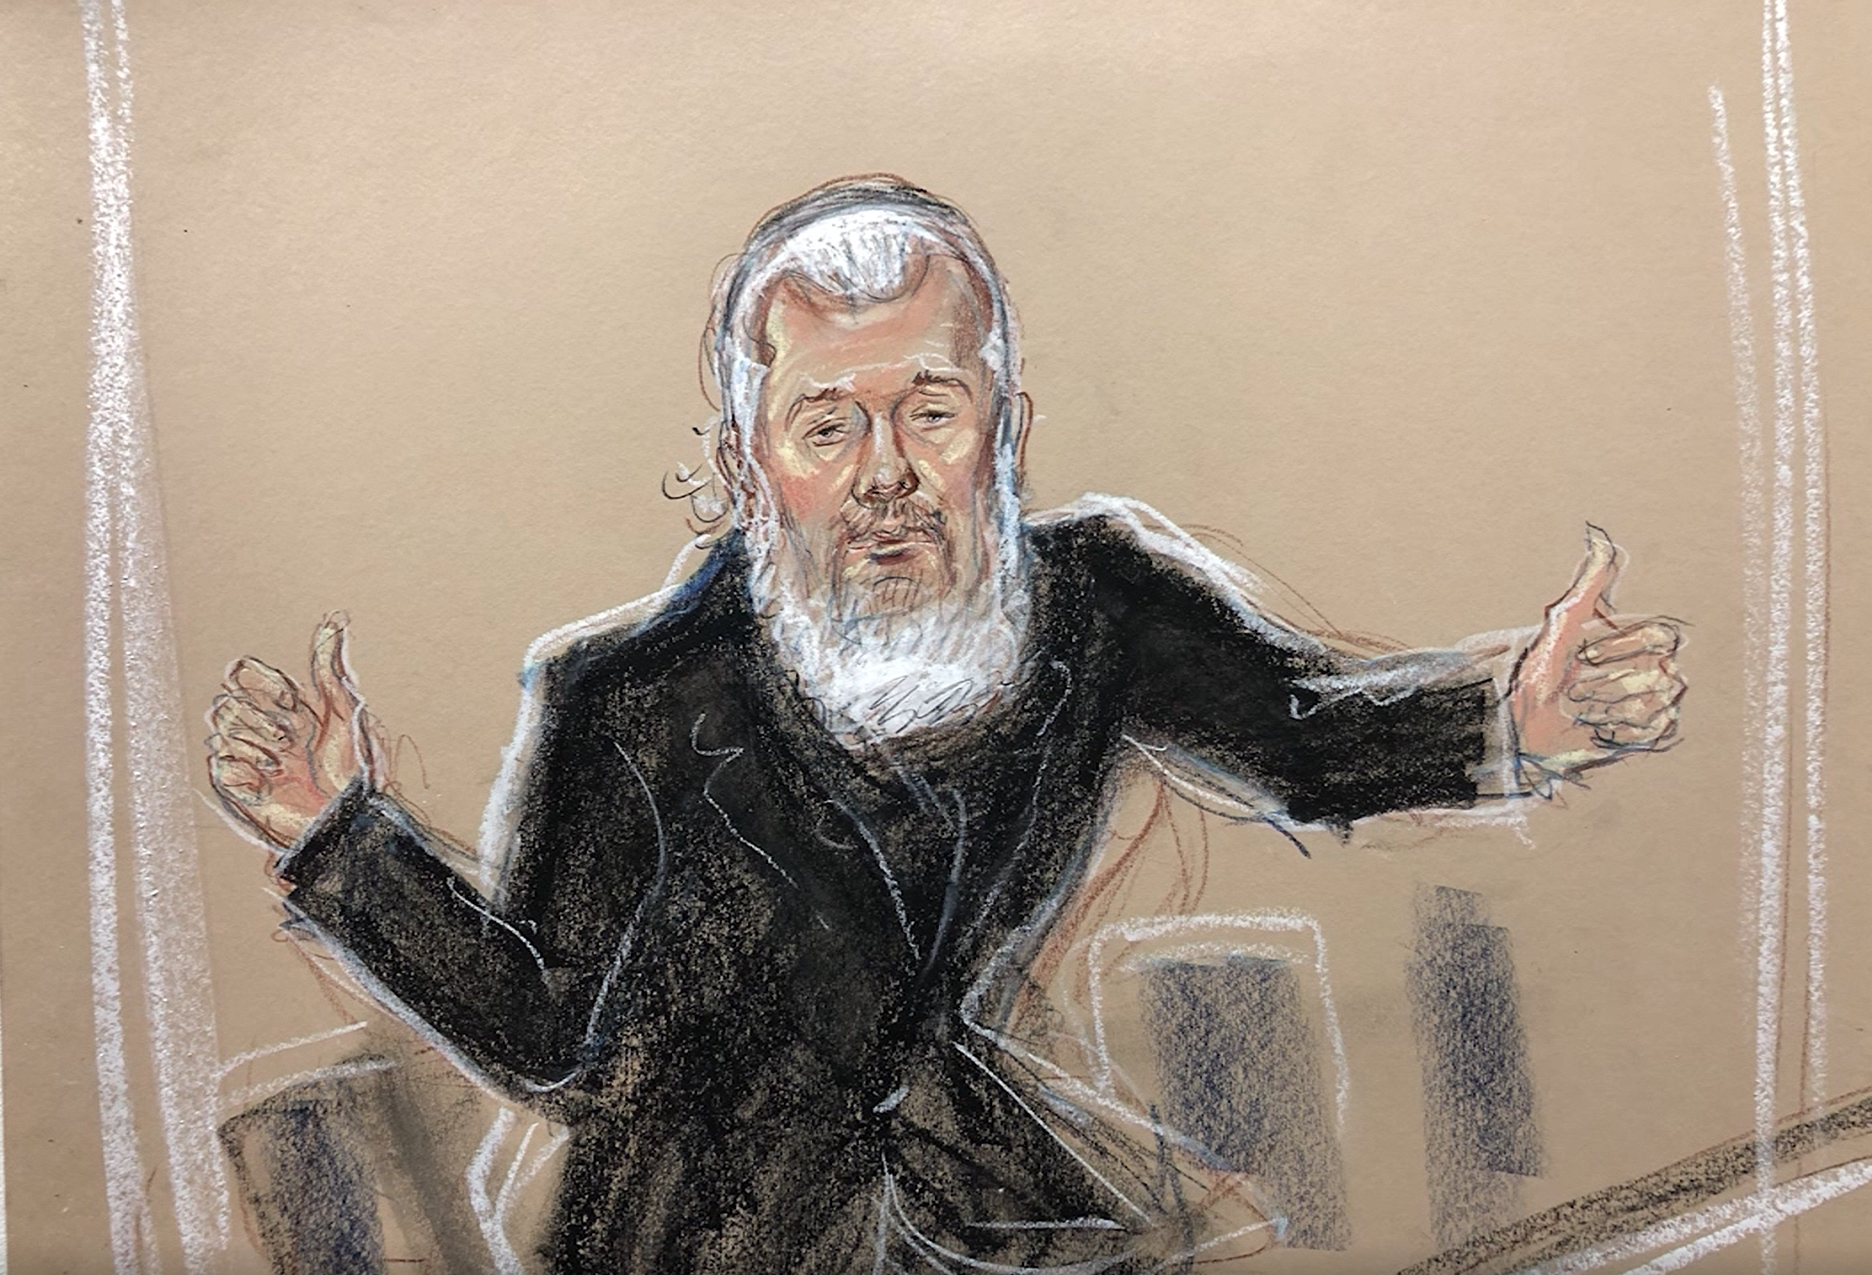 A sketch of Julian Assange in court in London on Apr. 11, 2019 after his arrest at the Ecuadorian embassy. (Priscilla Coleman, MB Media/CNN Newsource)